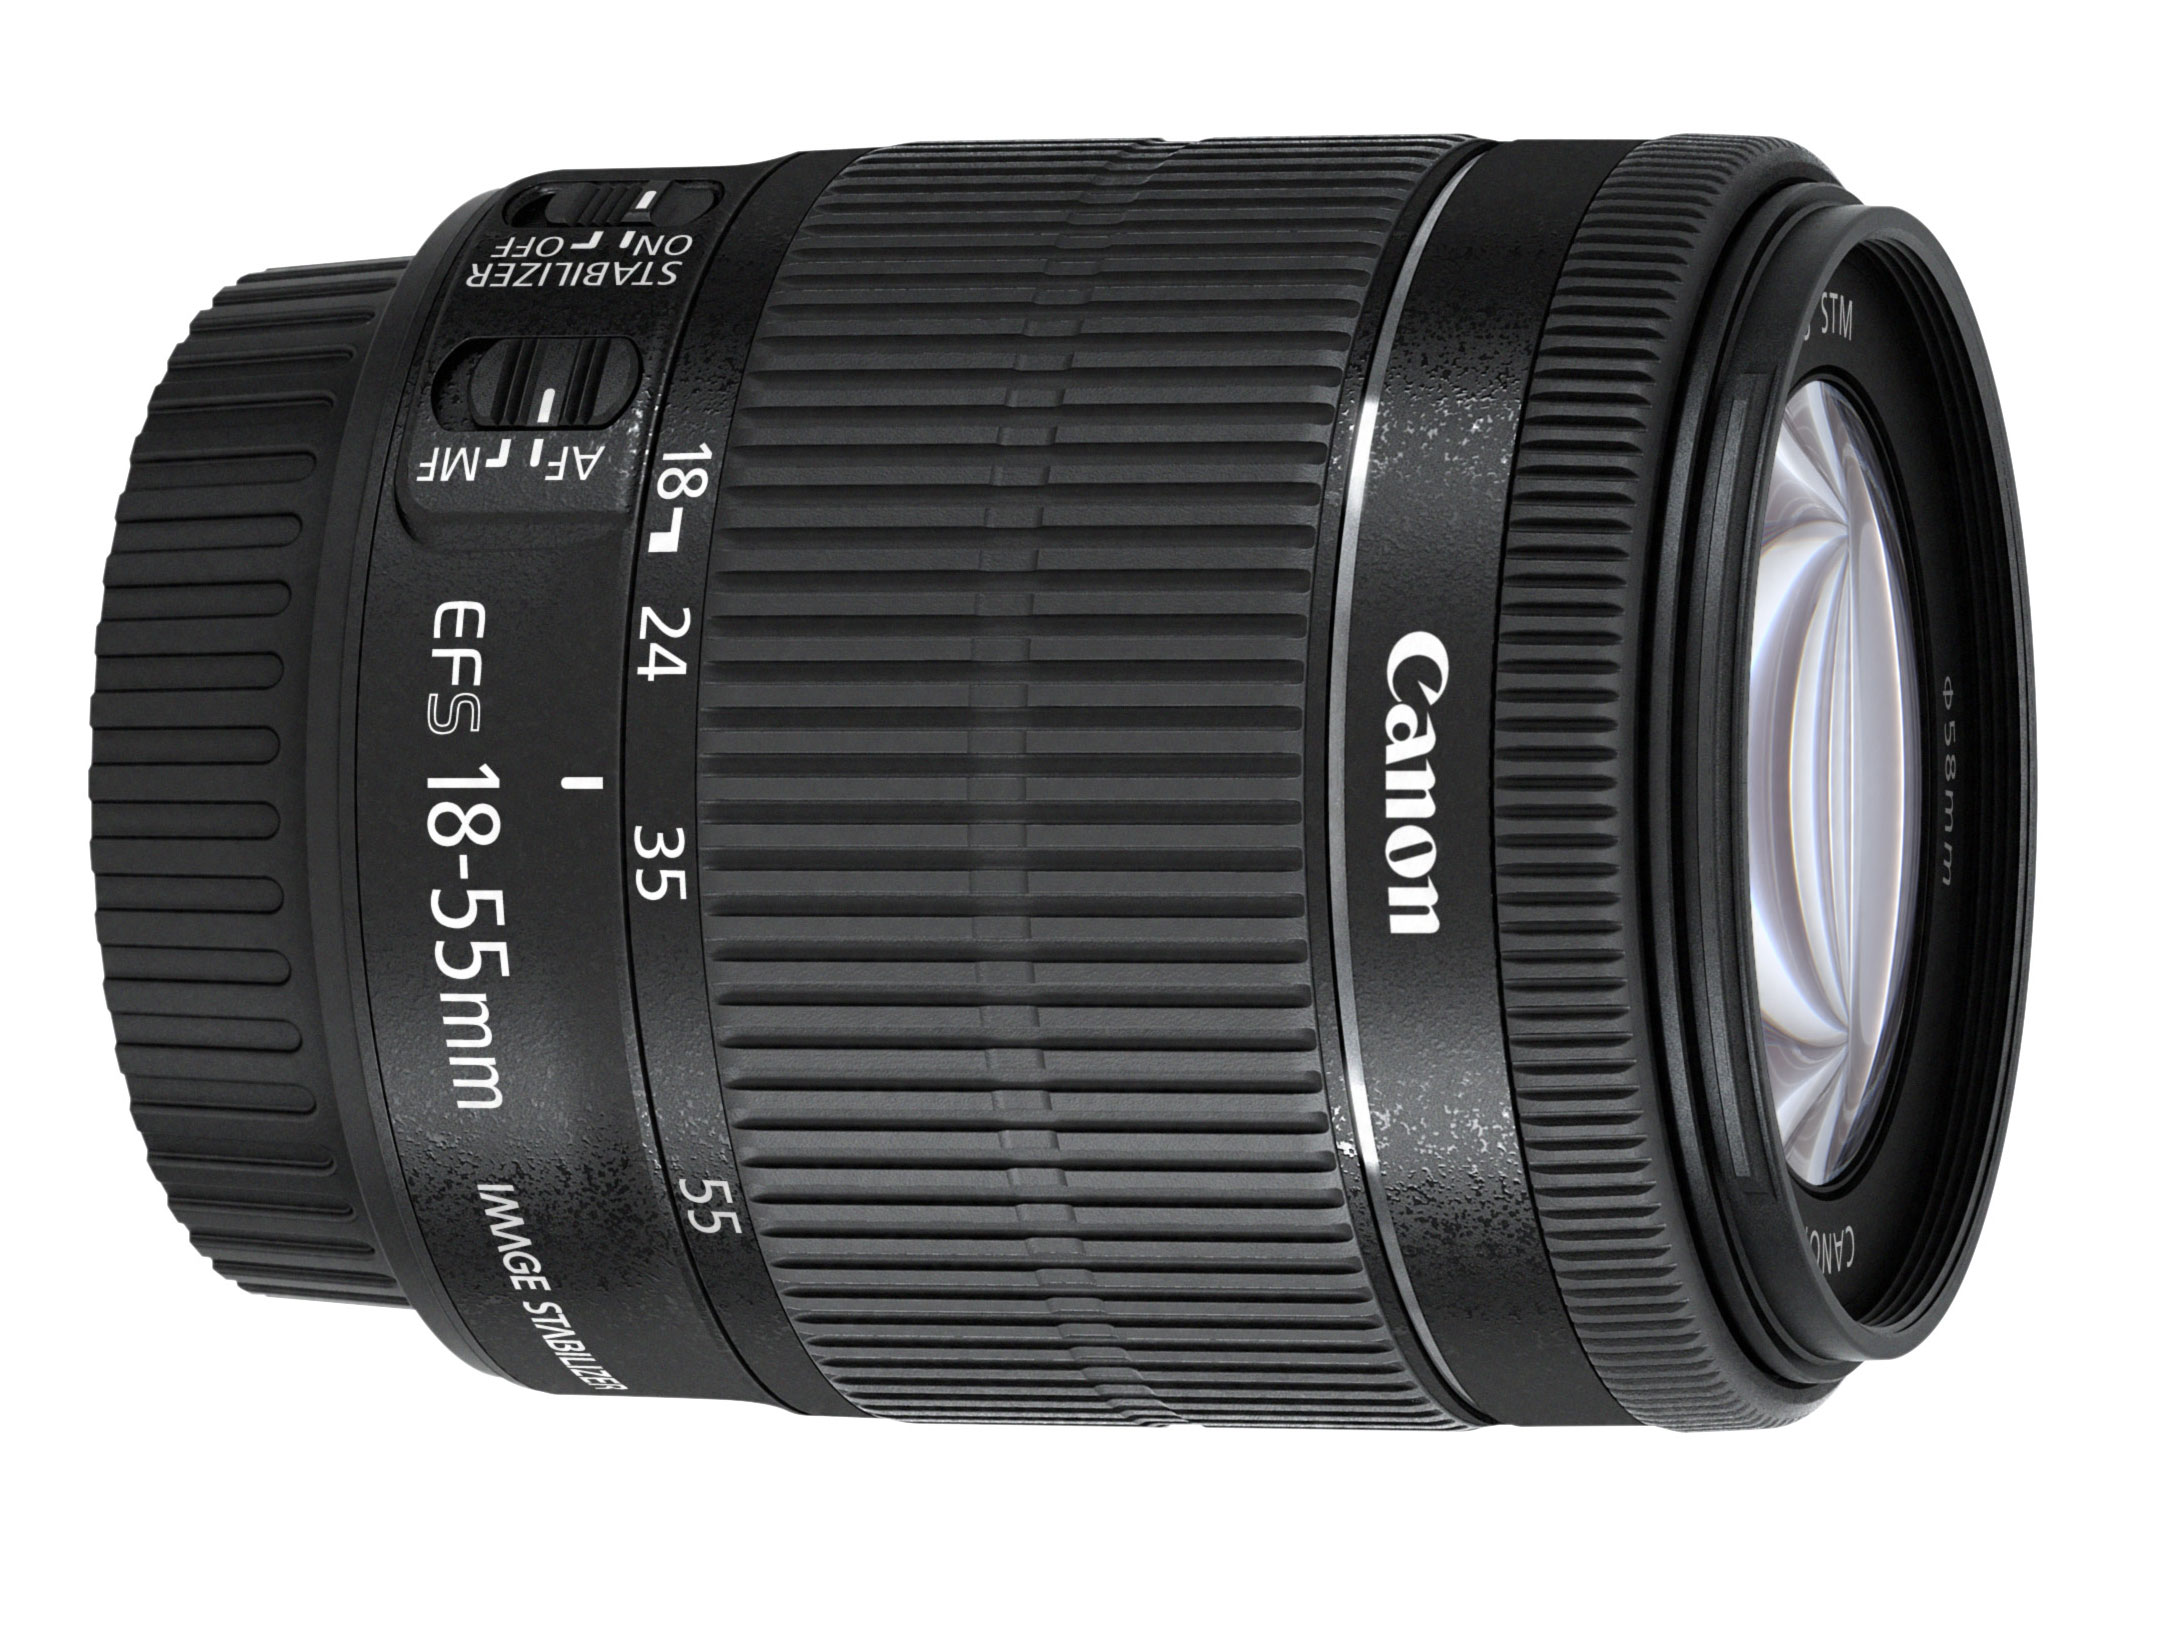 Canon announces EOS 700D / Rebel T5i 18MP and 18-55mm STM